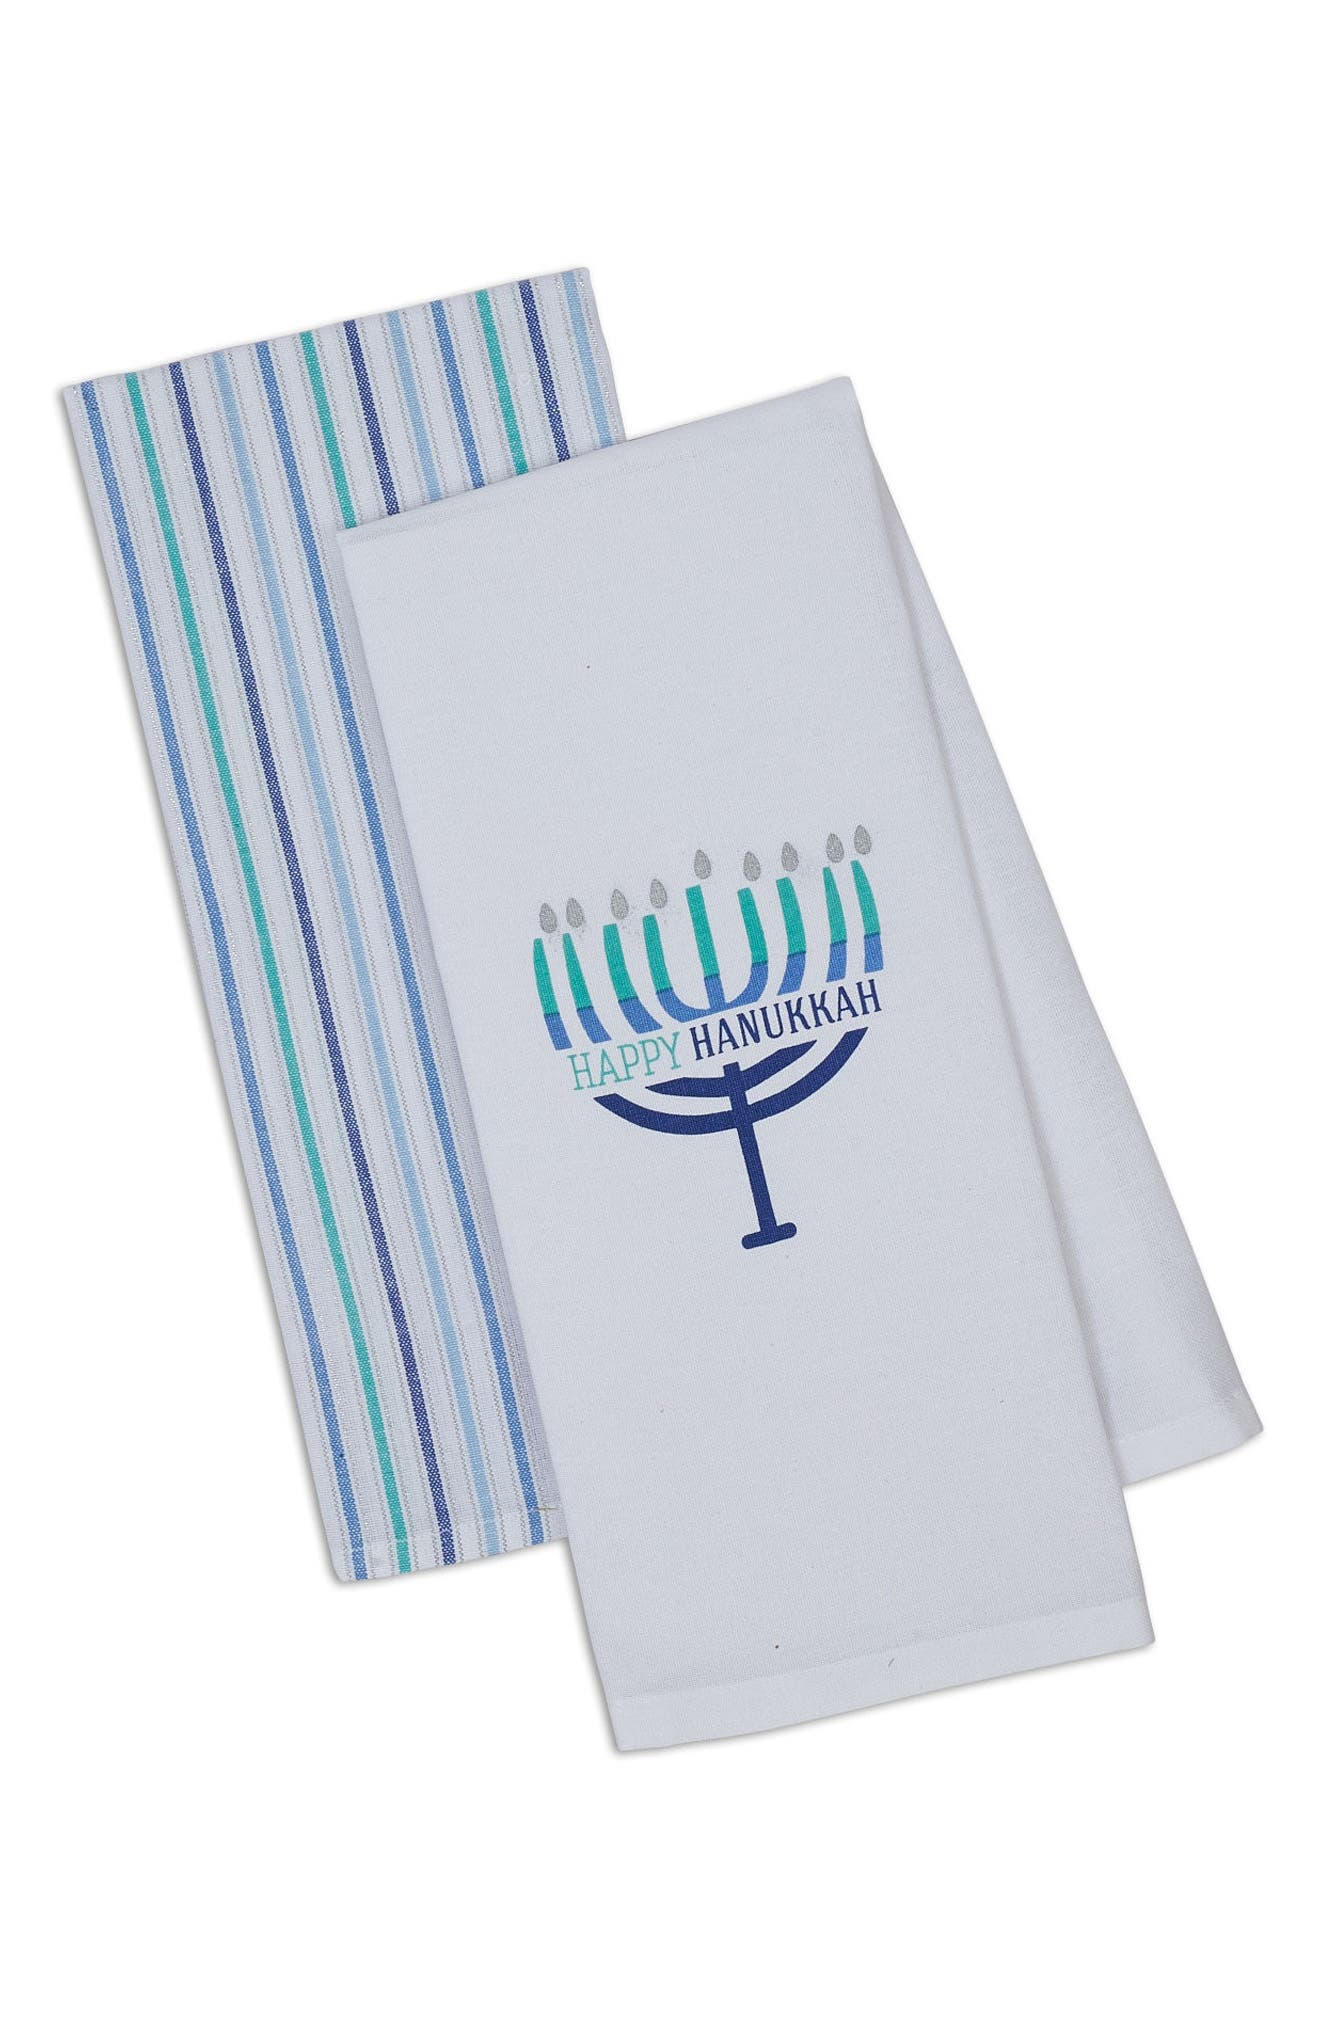 Happy Hanukkah Set of 2 Dish Towels,                             Main thumbnail 1, color,                             100